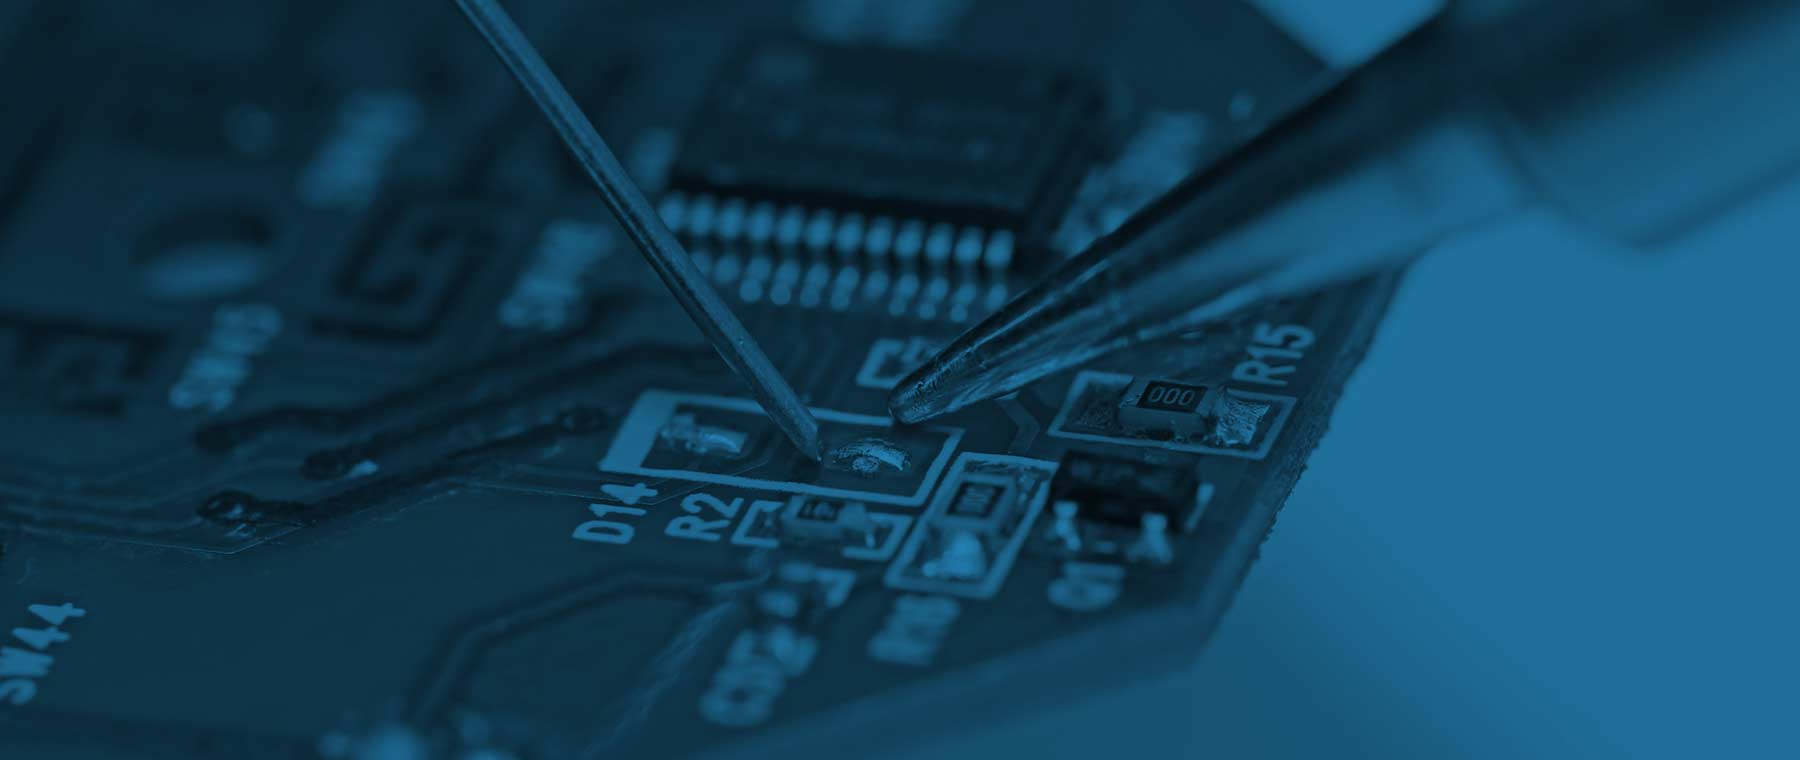 Why Iot Startups Need To Consider The Business Model First What Is A Printed Circuit Board Gross